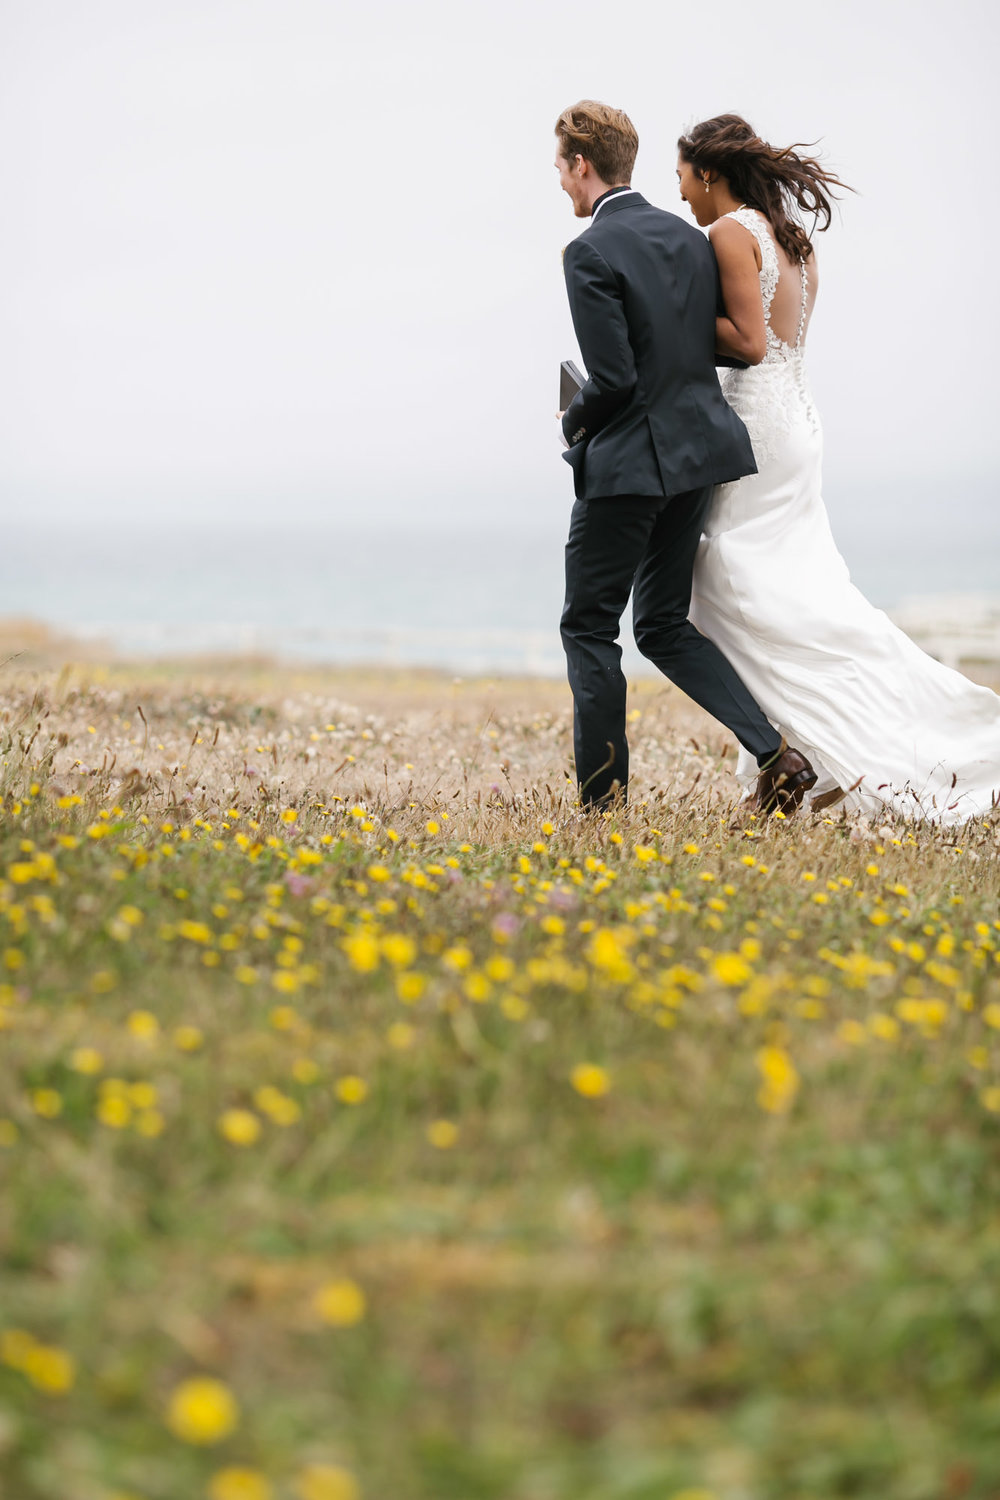 Wedding couple walk away together in field of wildflowers